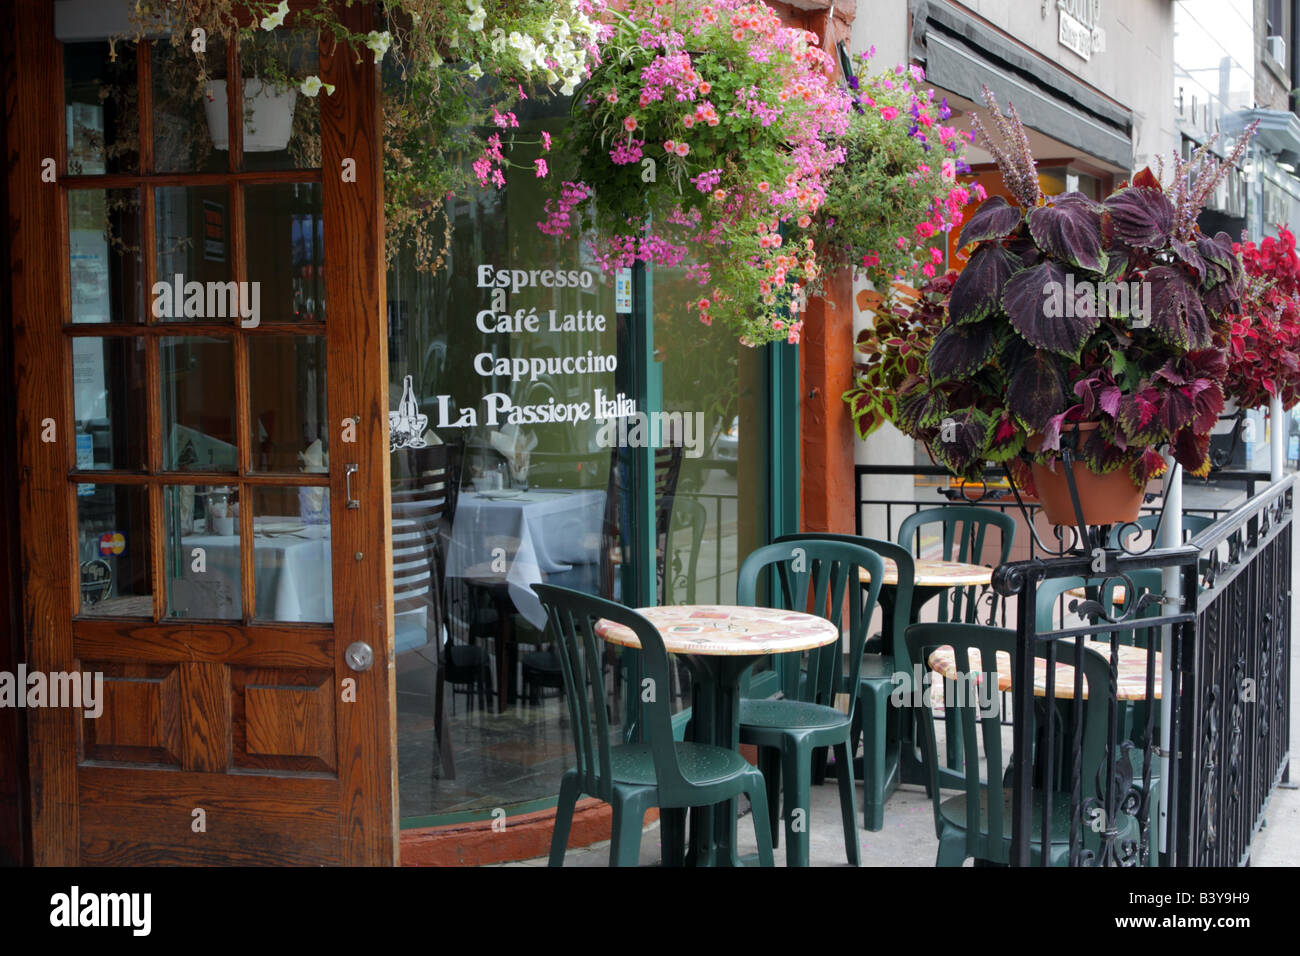 Cafe Restaurant With Outdoor Patio On Yonge Street In Toronto Ontario Canada